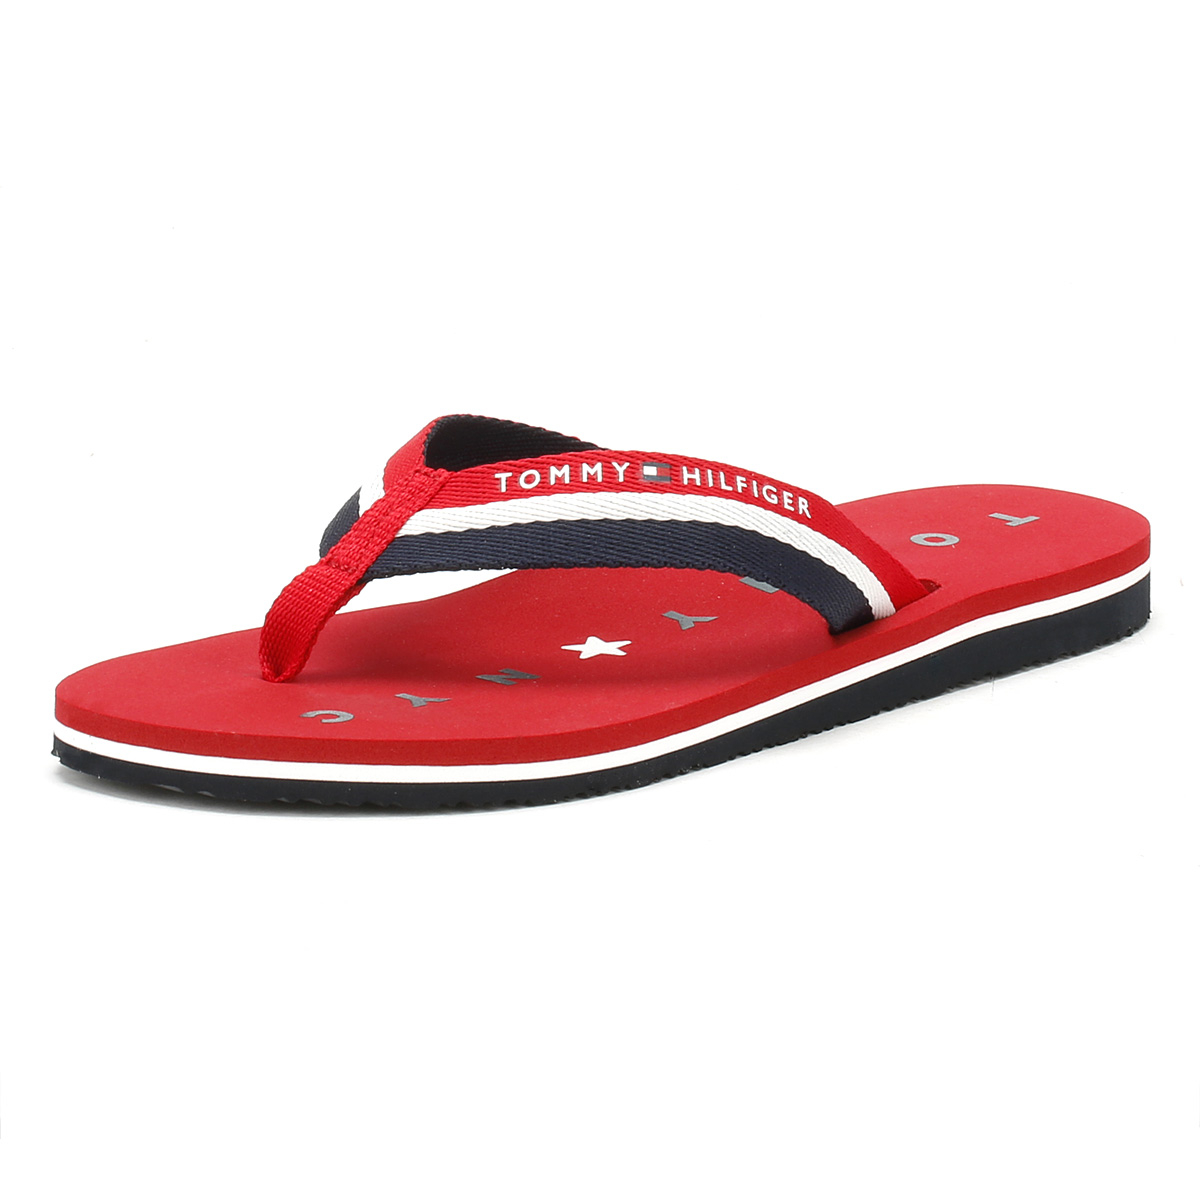 aadd0702a03885 Details about Tommy Hilfiger Womens Flip Flops Tango Red Blue Ladies Beach  Thong Sandals